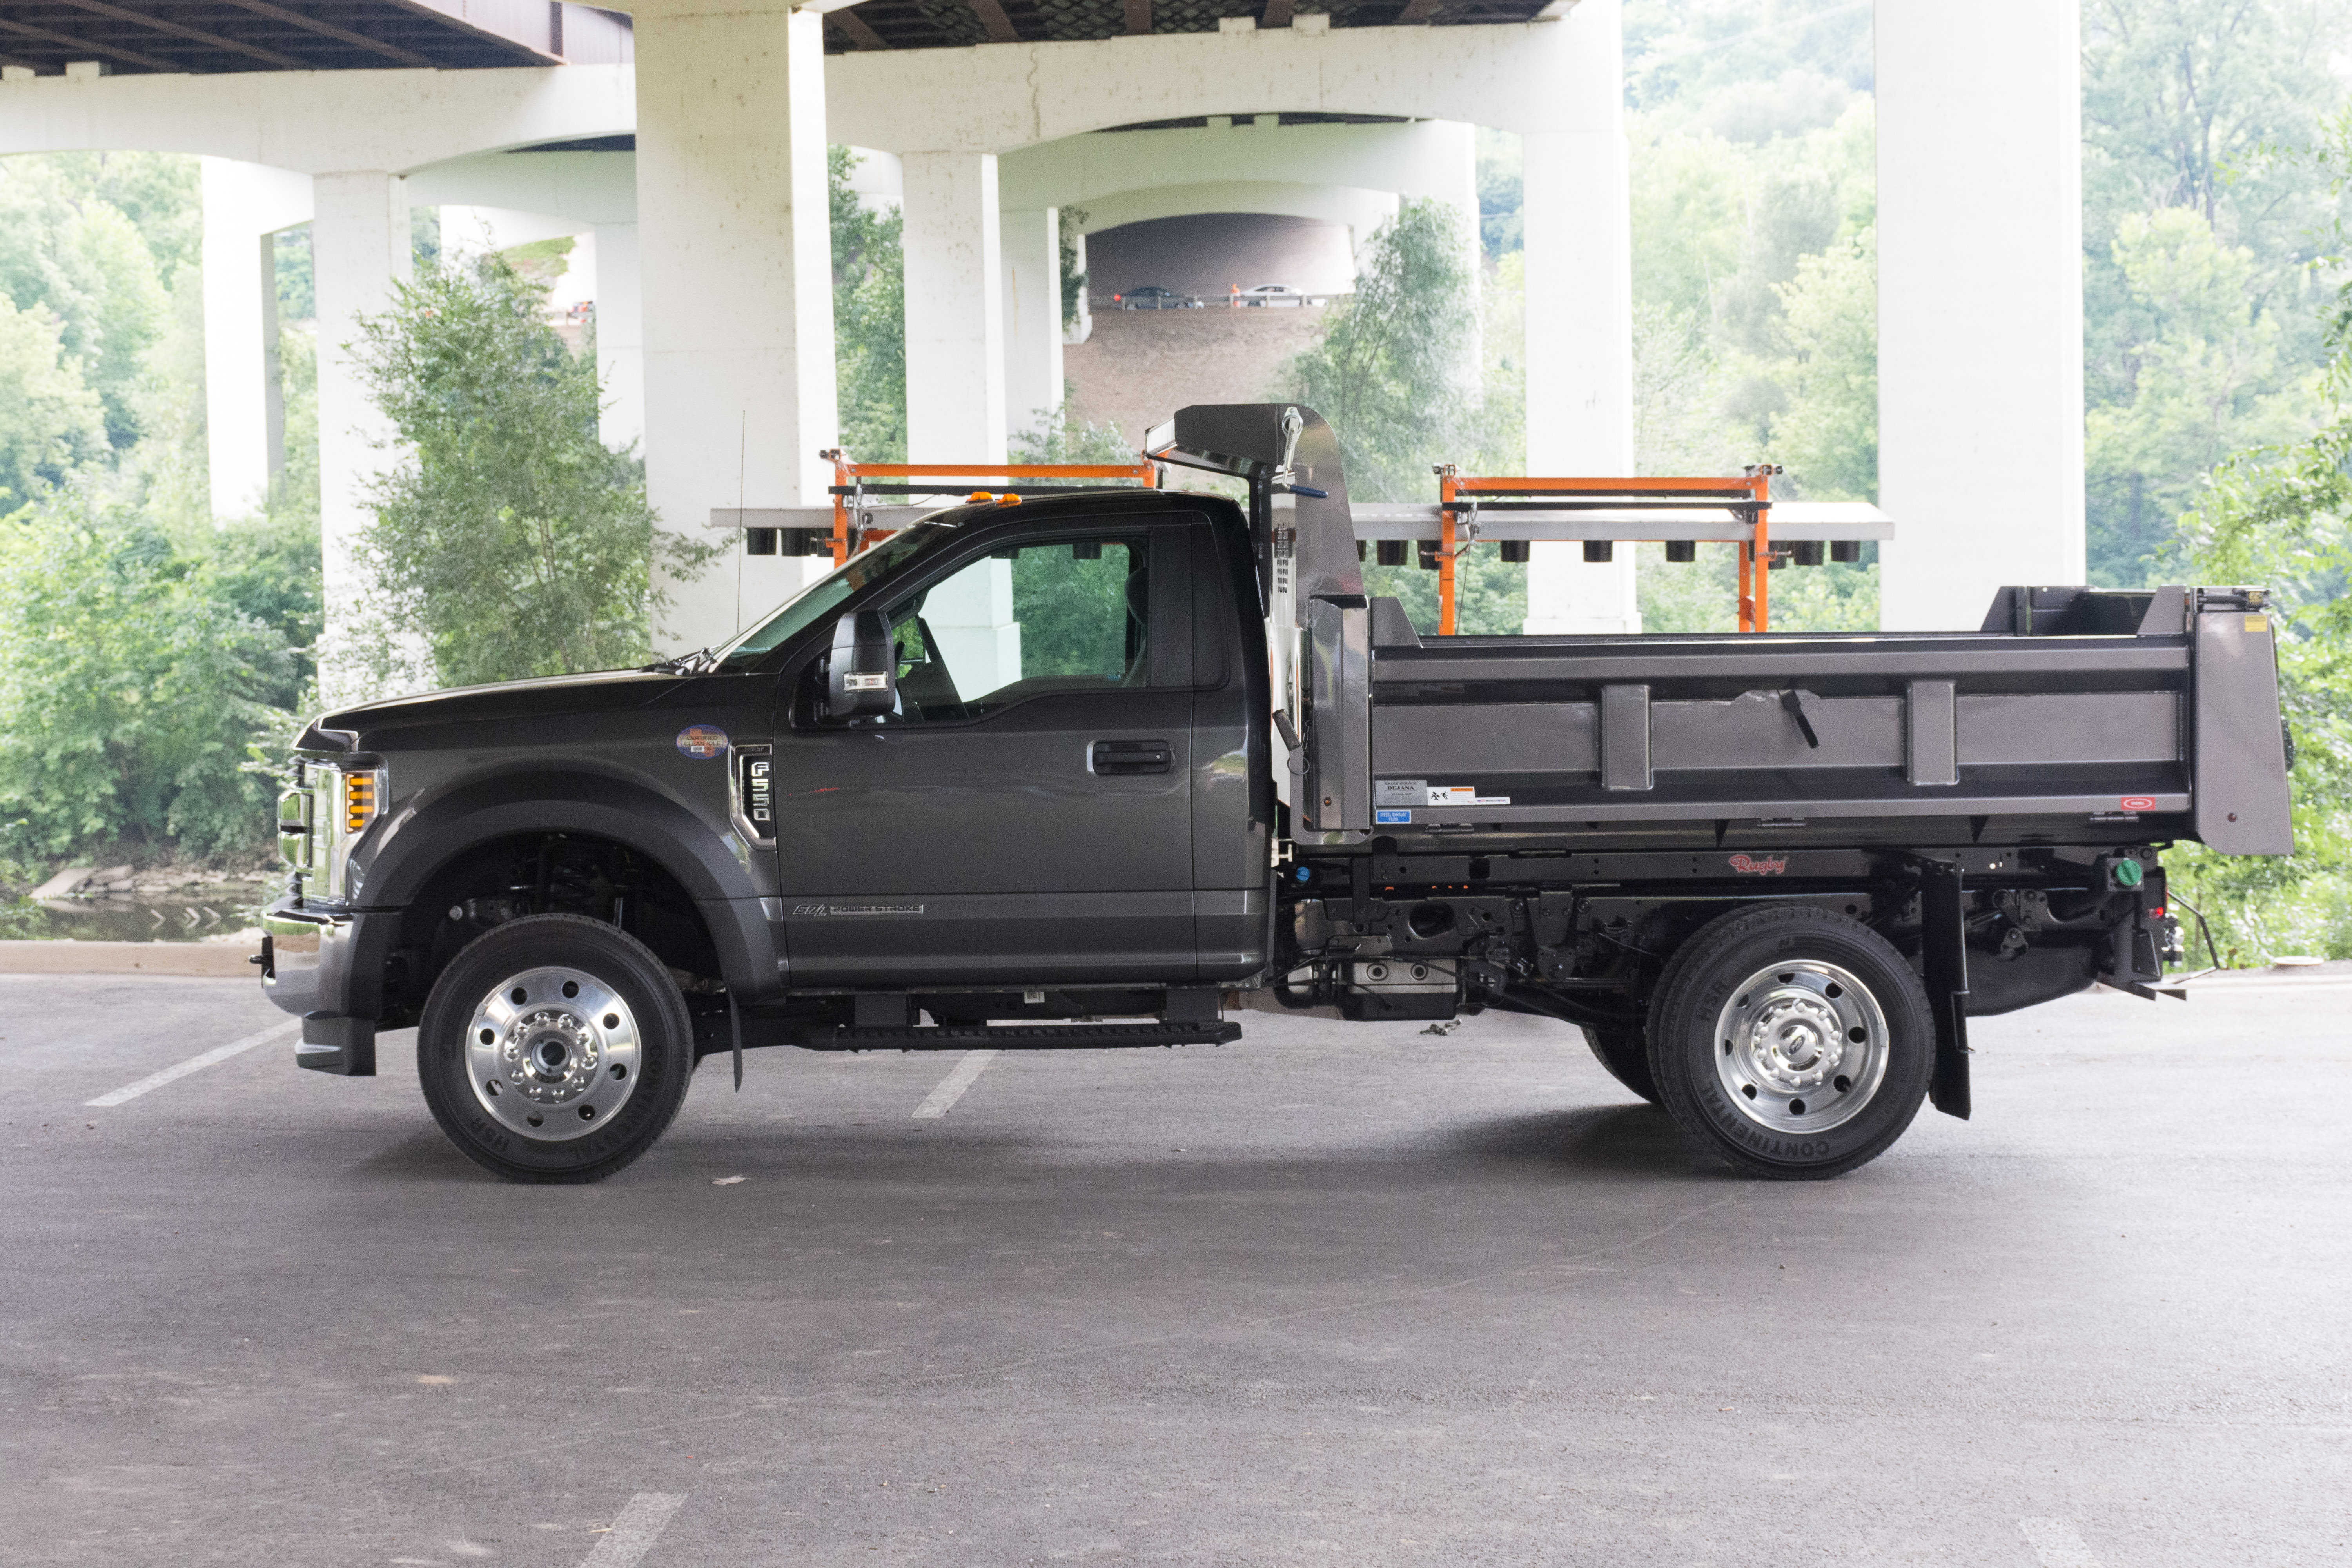 2018 Ford F-550 Super Duty Review – Put the Load Right on Me - The